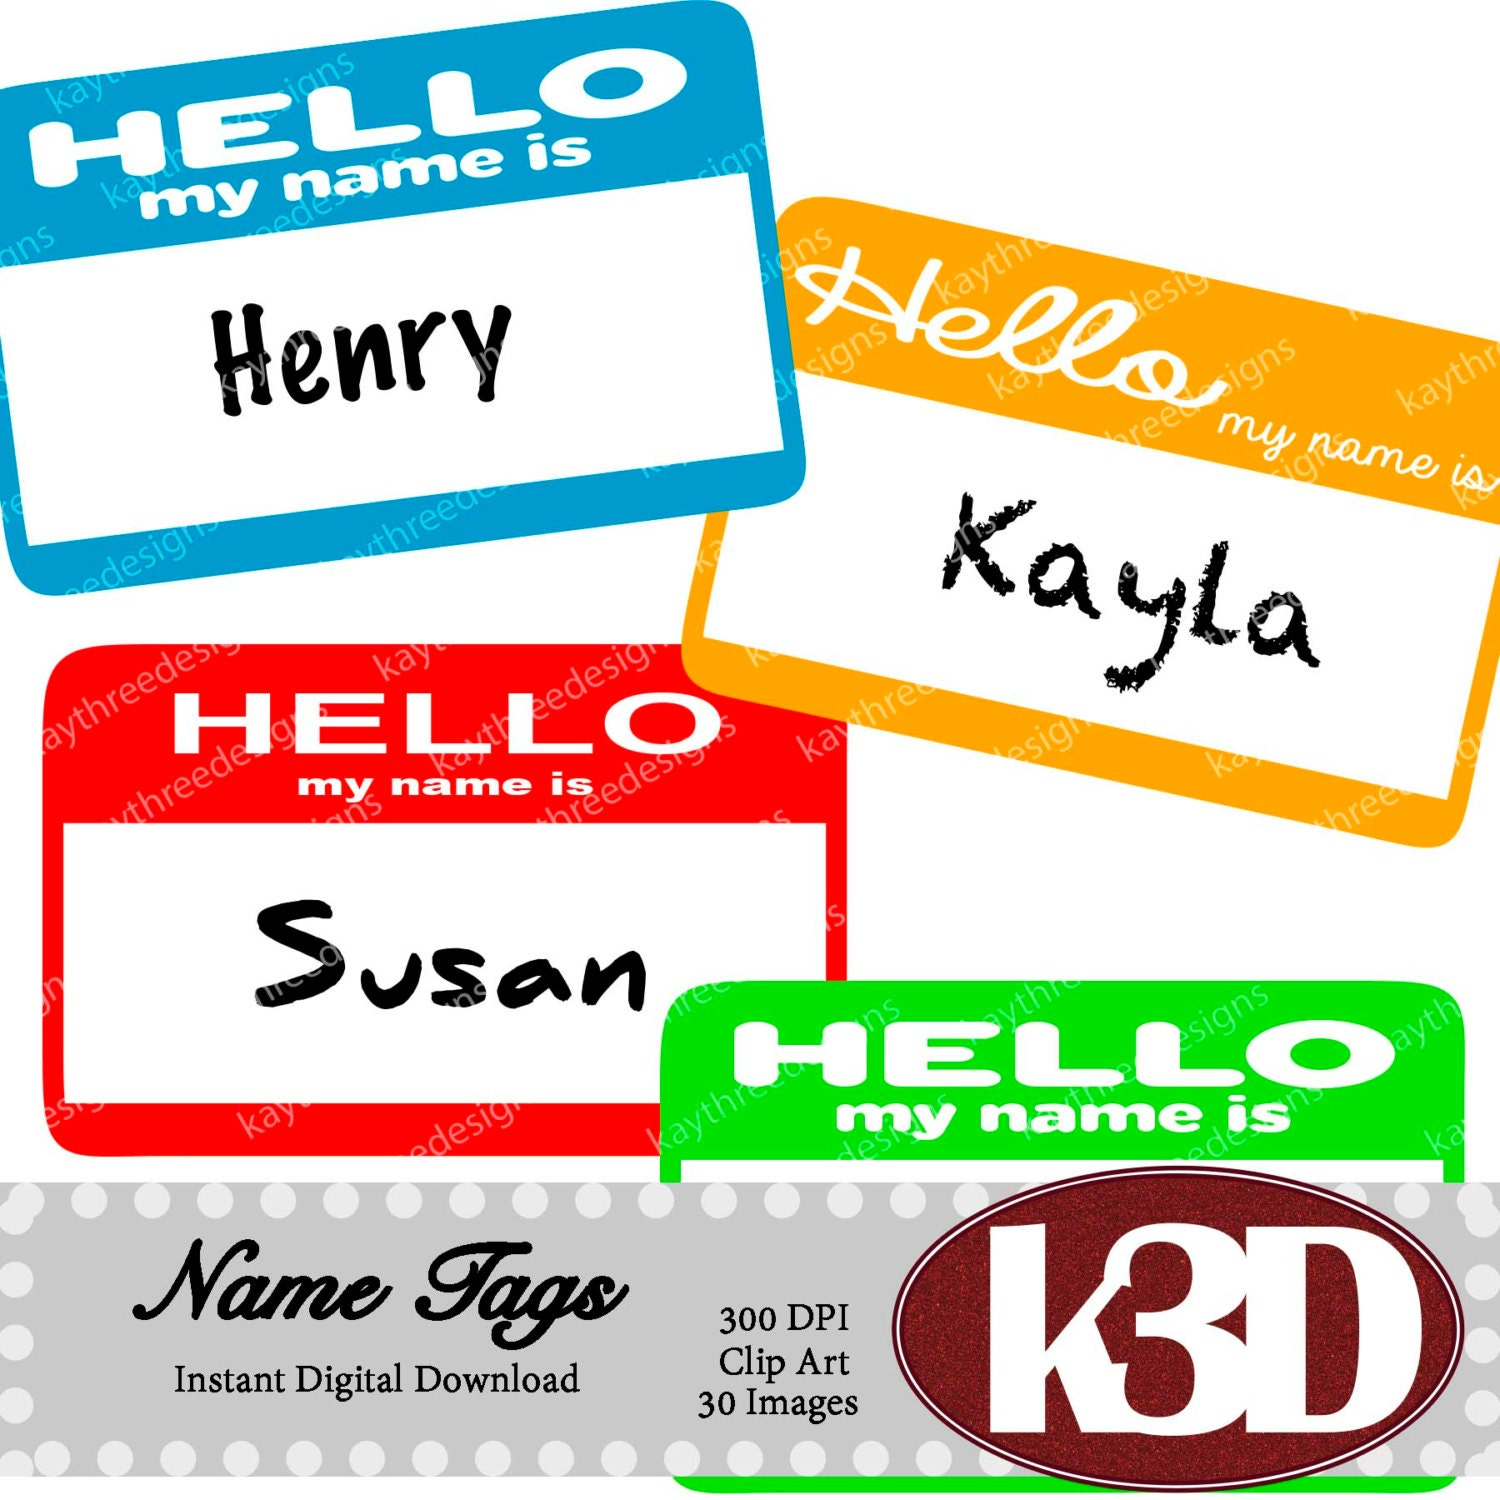 name tags hello my name is name tags rainbow name tags clipart rh etsystudio com free name tag clipart free name tag clipart